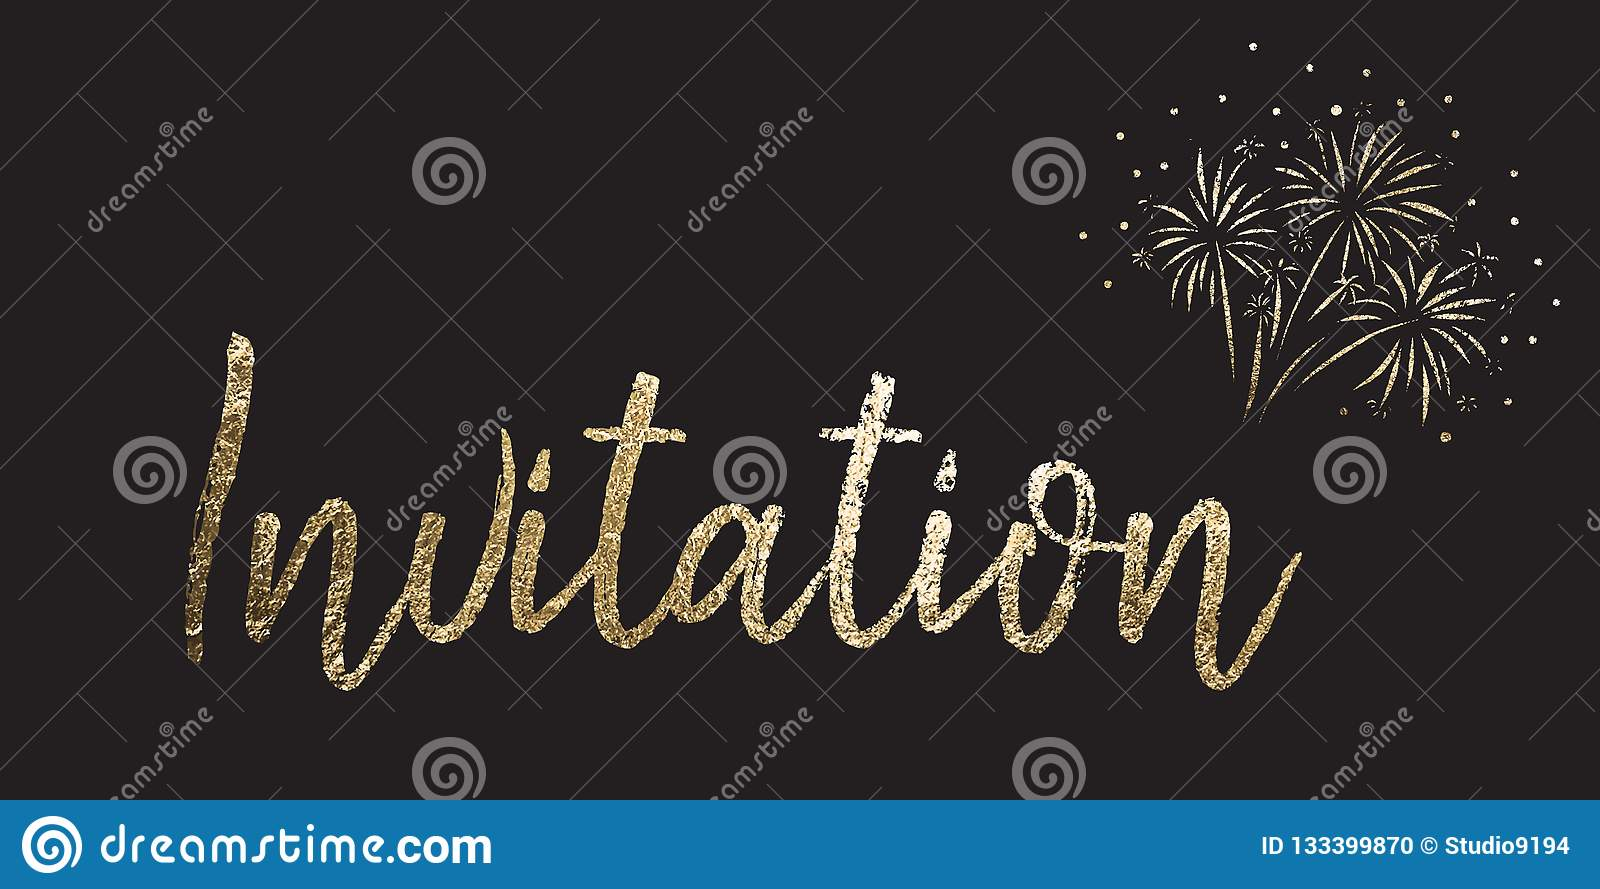 New Years Eve party invitation. Invitation Gold foil vector lettering on black background with firework. Use for elegant